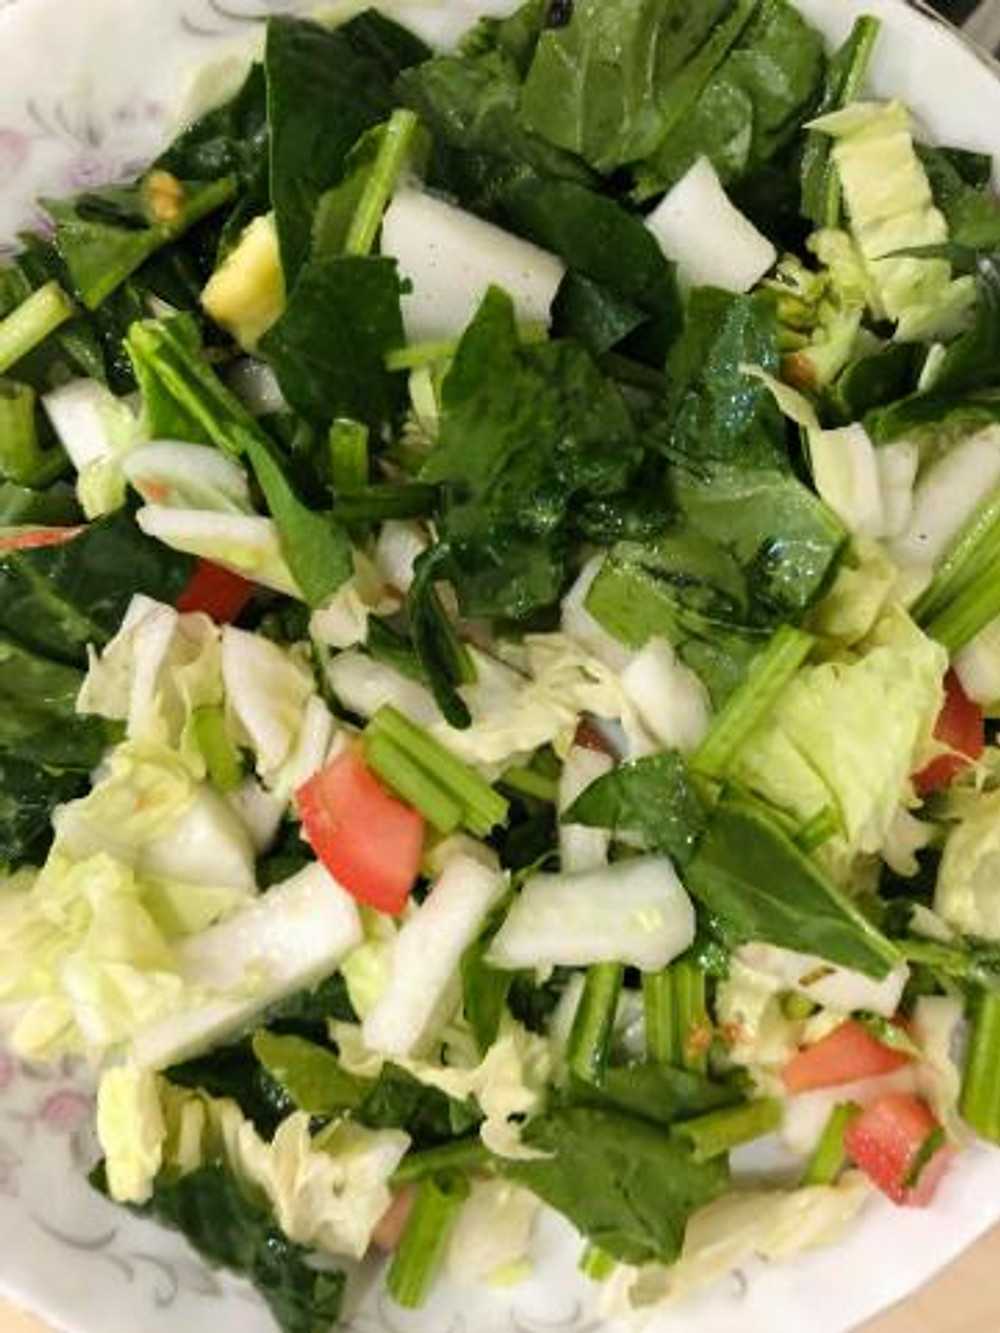 Salad vegetables